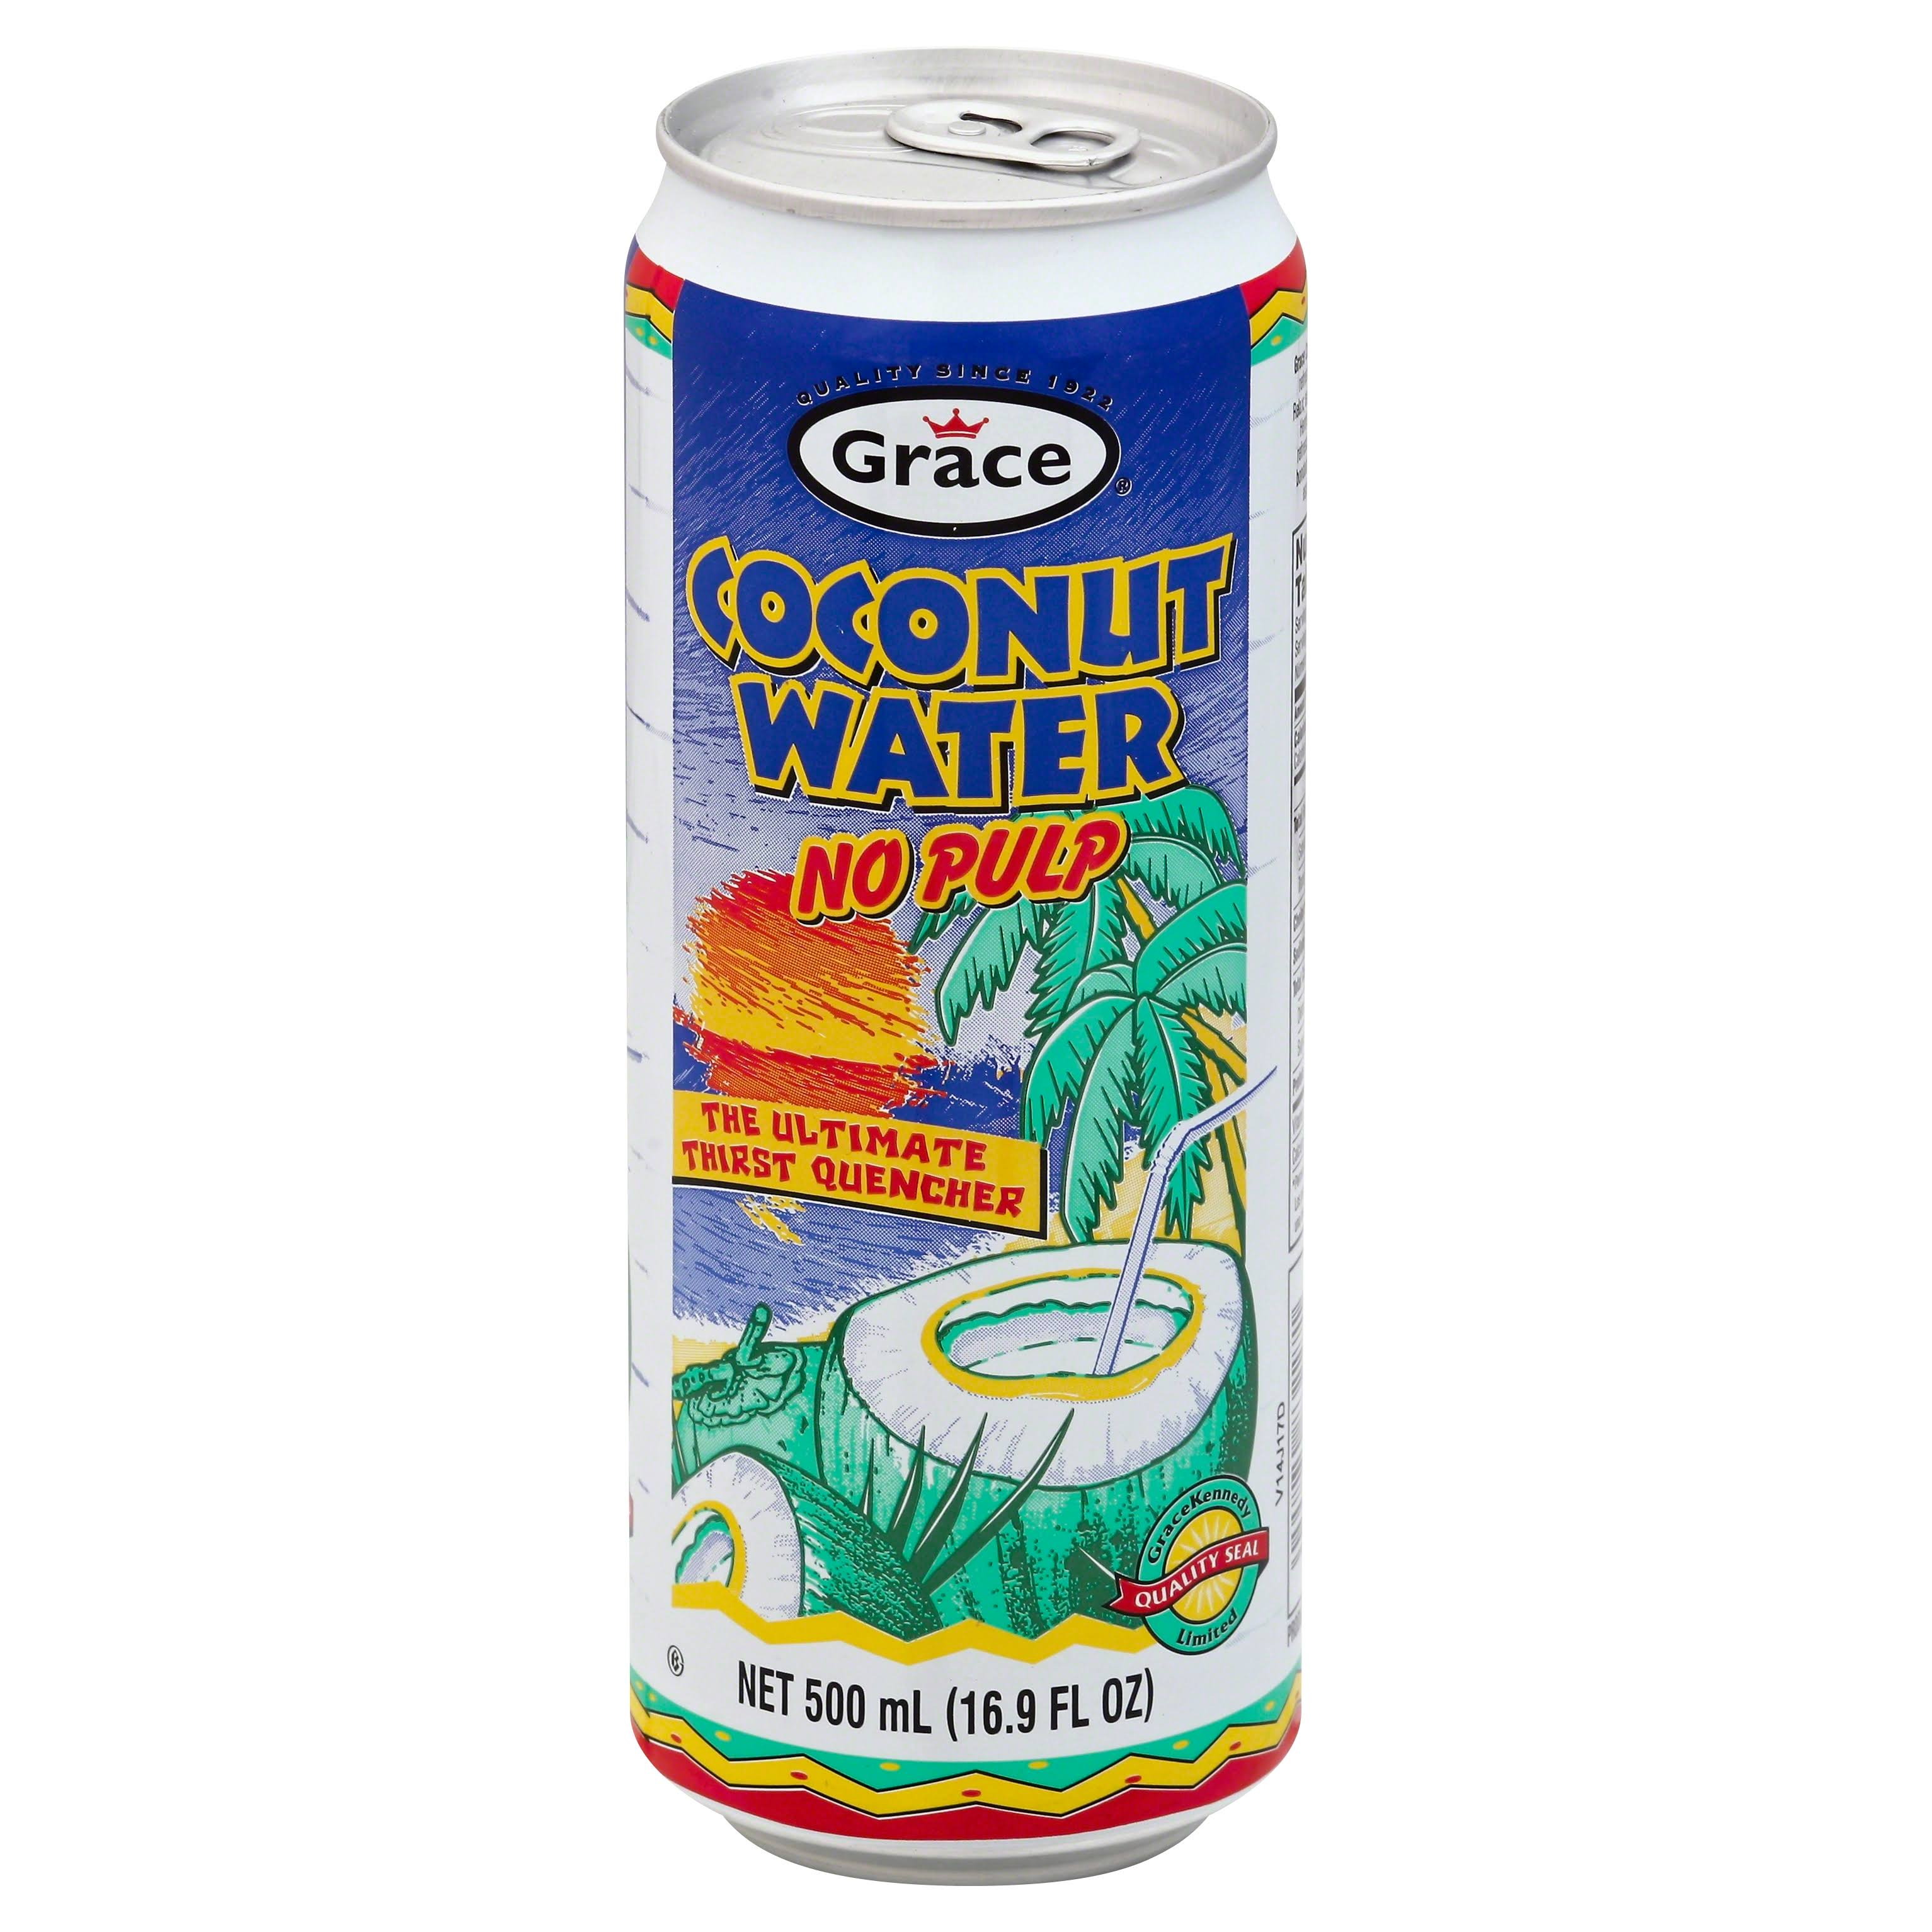 Grace Coconut Water - 17.5oz